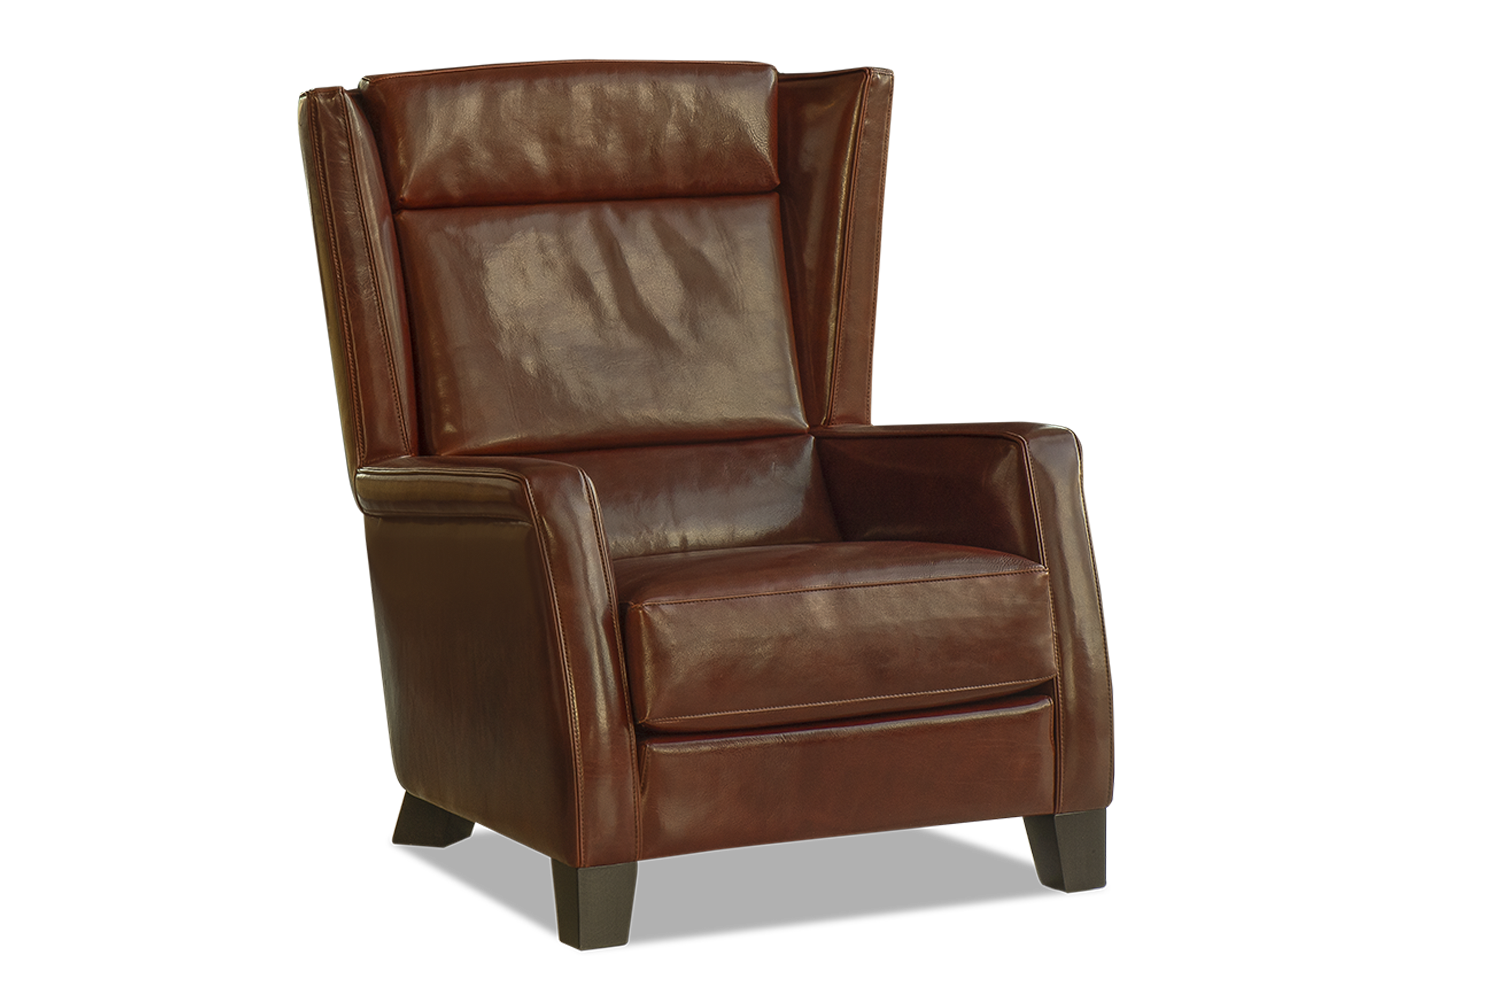 Classic Leather Seating-Mol & Geurts